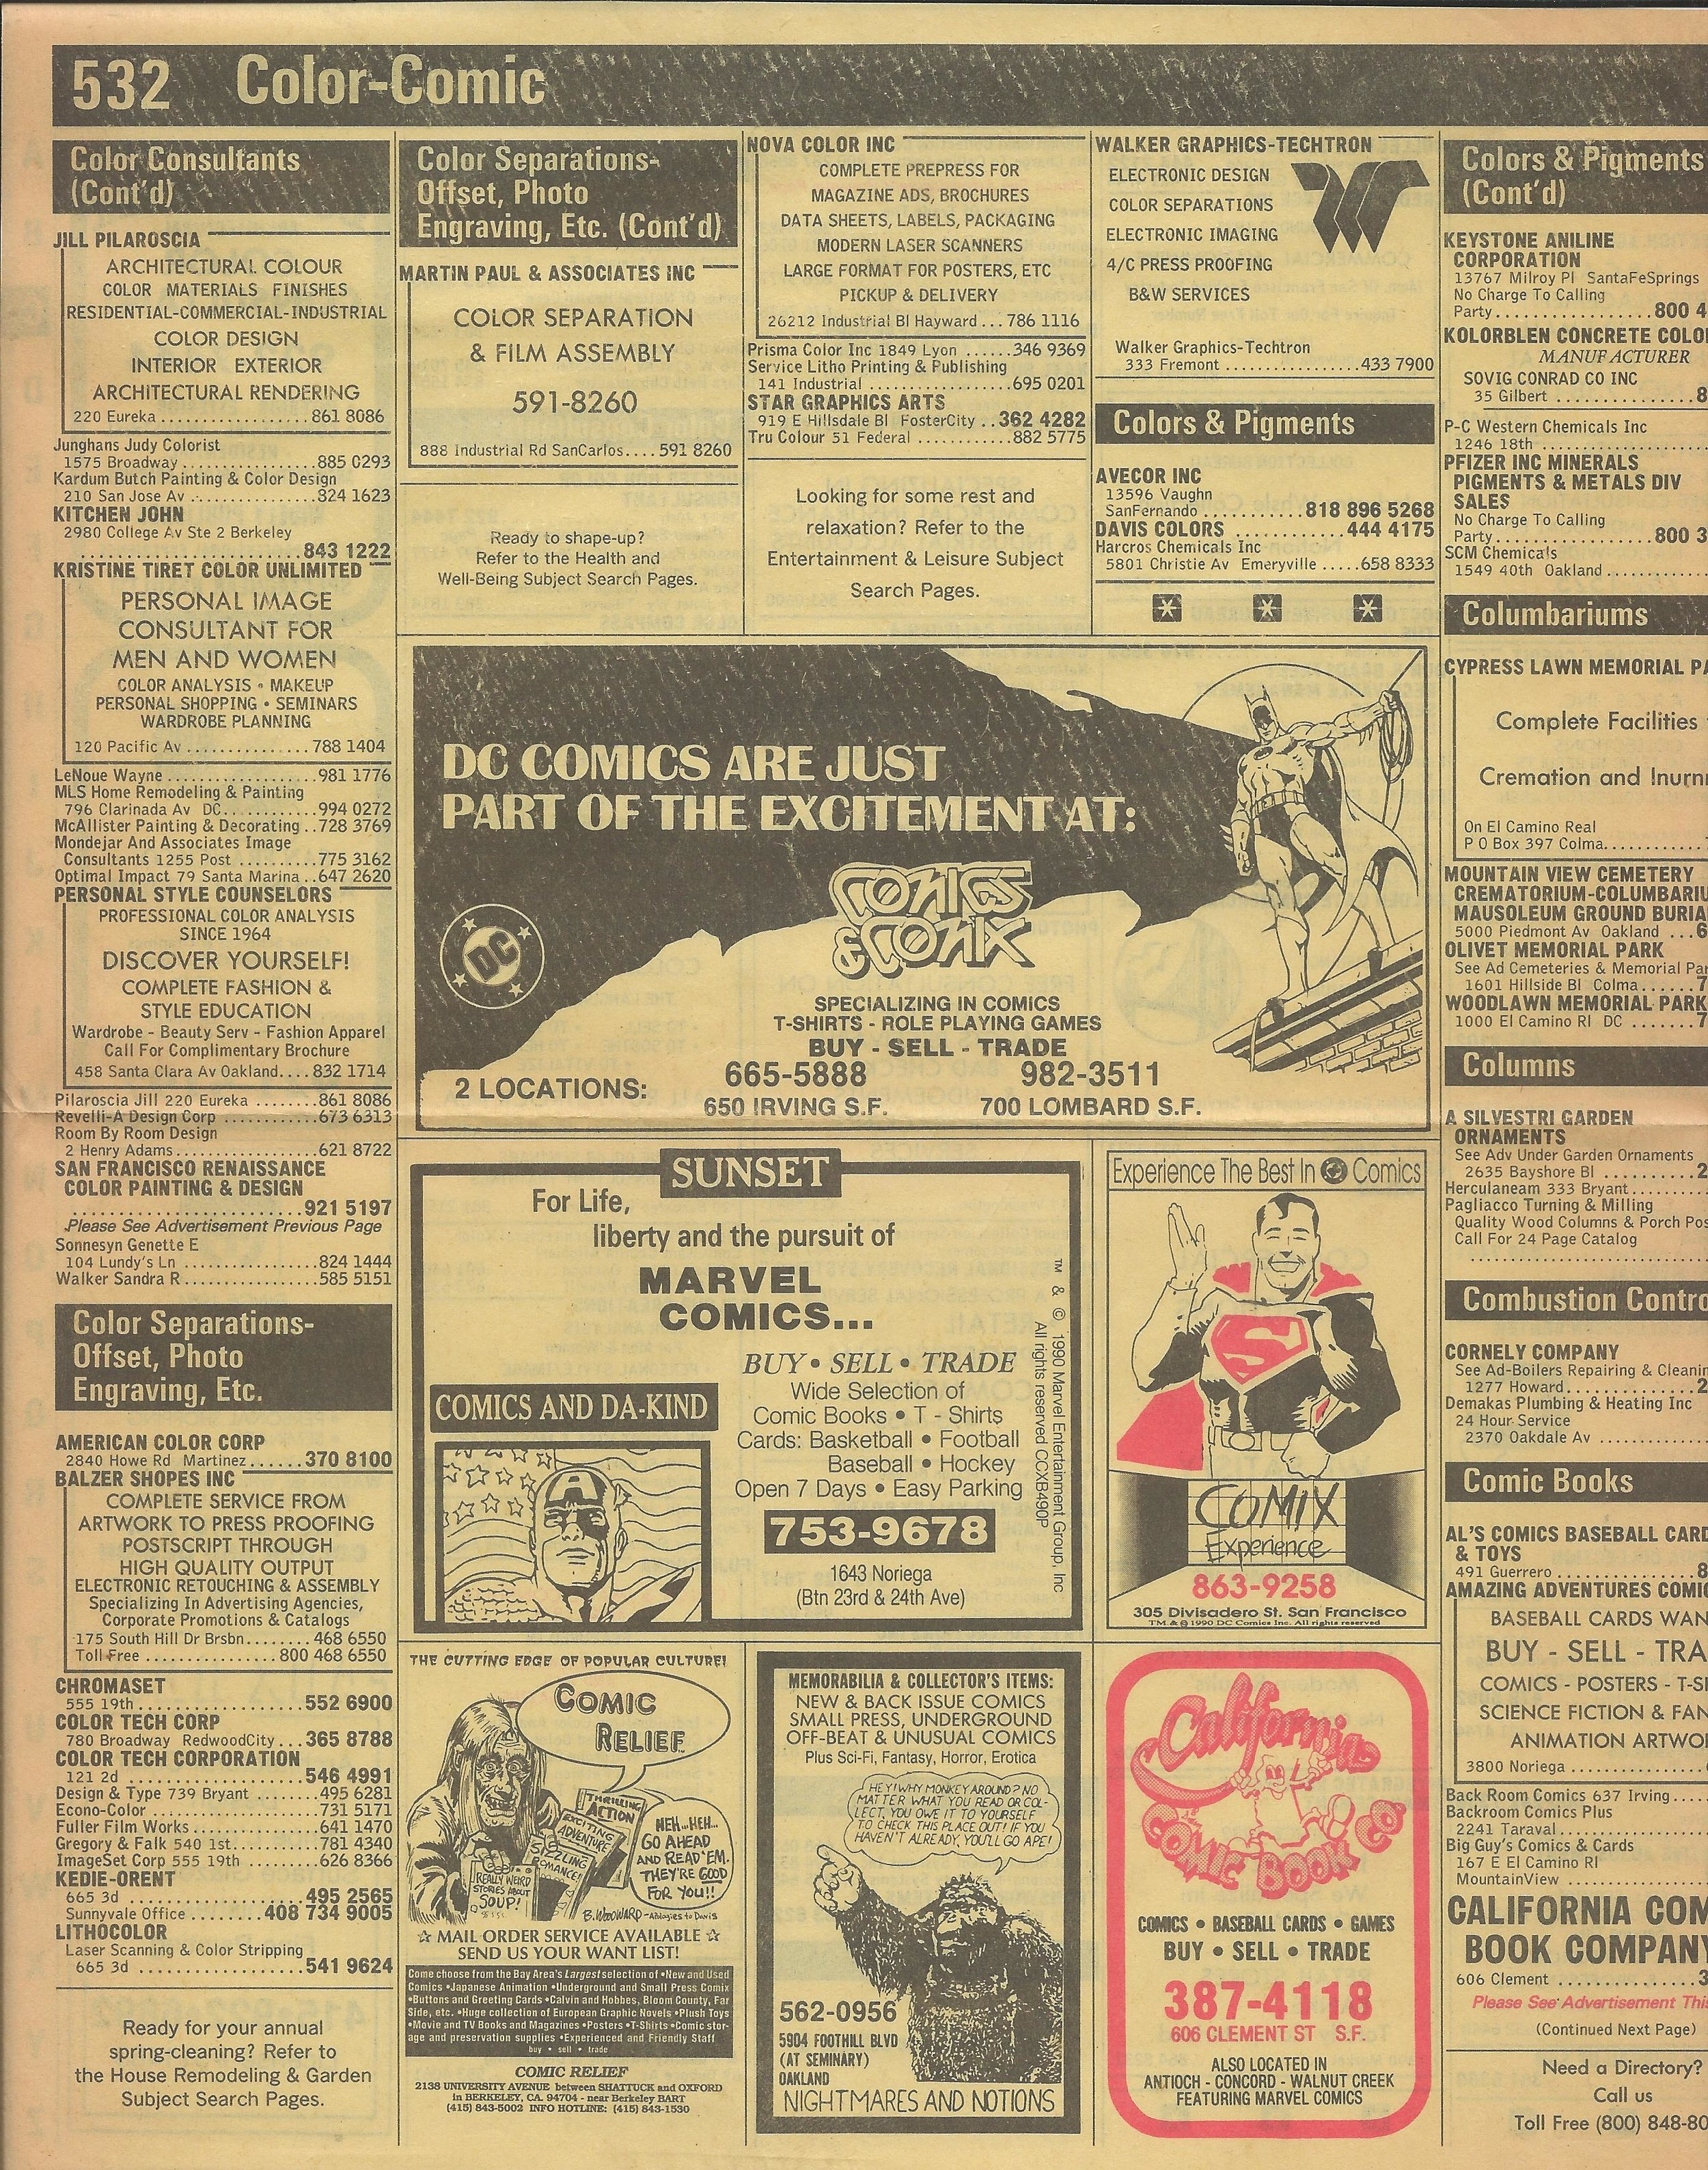 Yellow Pages 1990.jpg